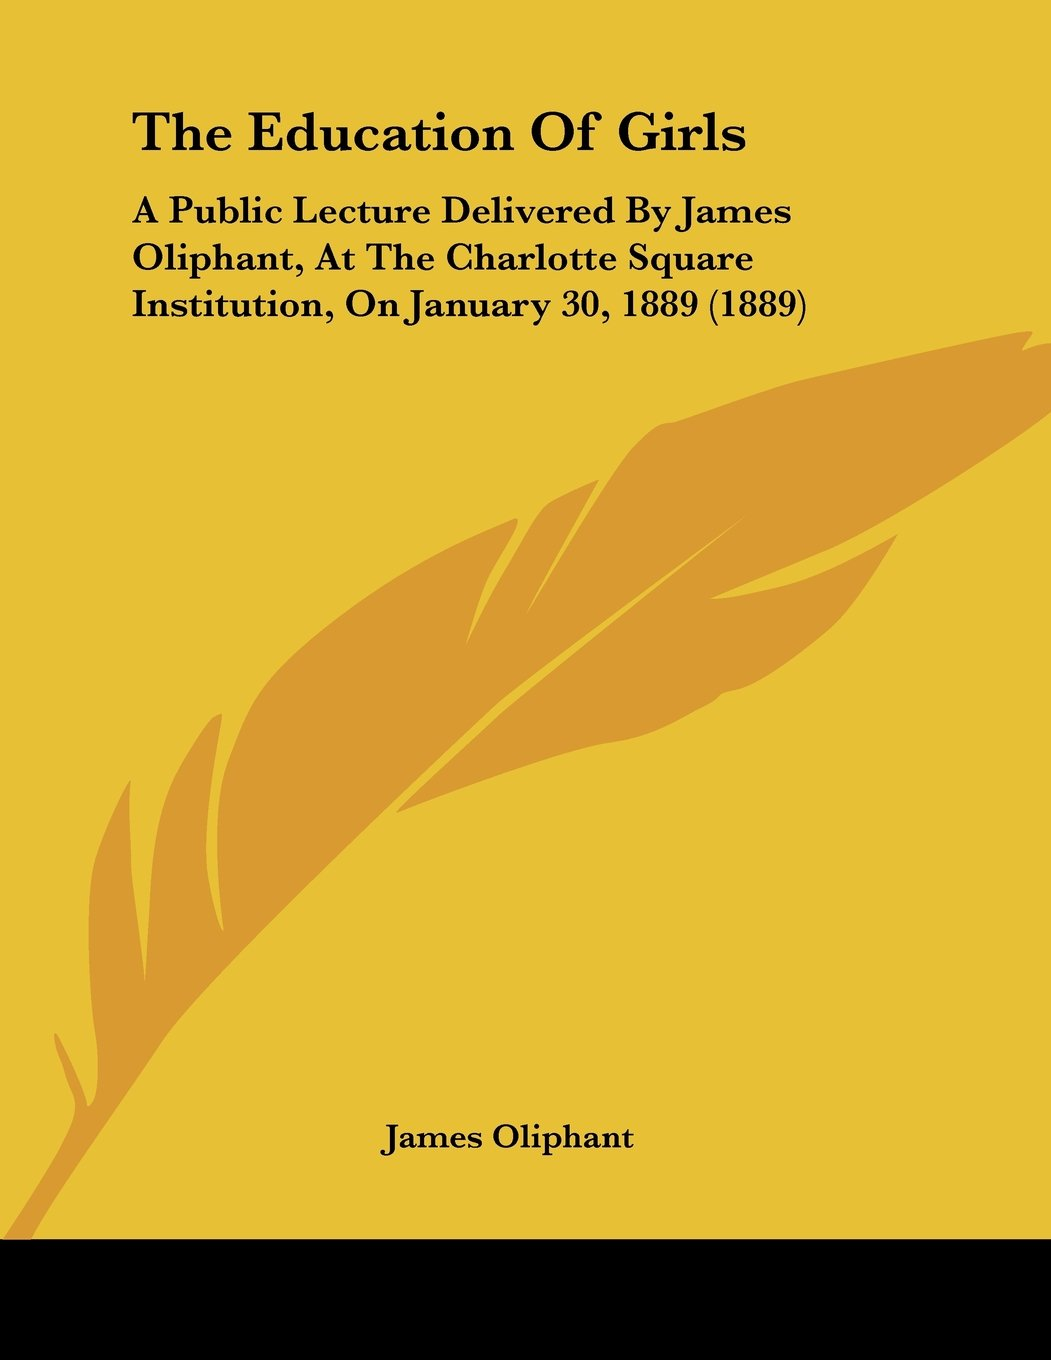 The Education Of Girls: A Public Lecture Delivered By James Oliphant, At The Charlotte Square Institution, On January 30, 1889 (1889) PDF